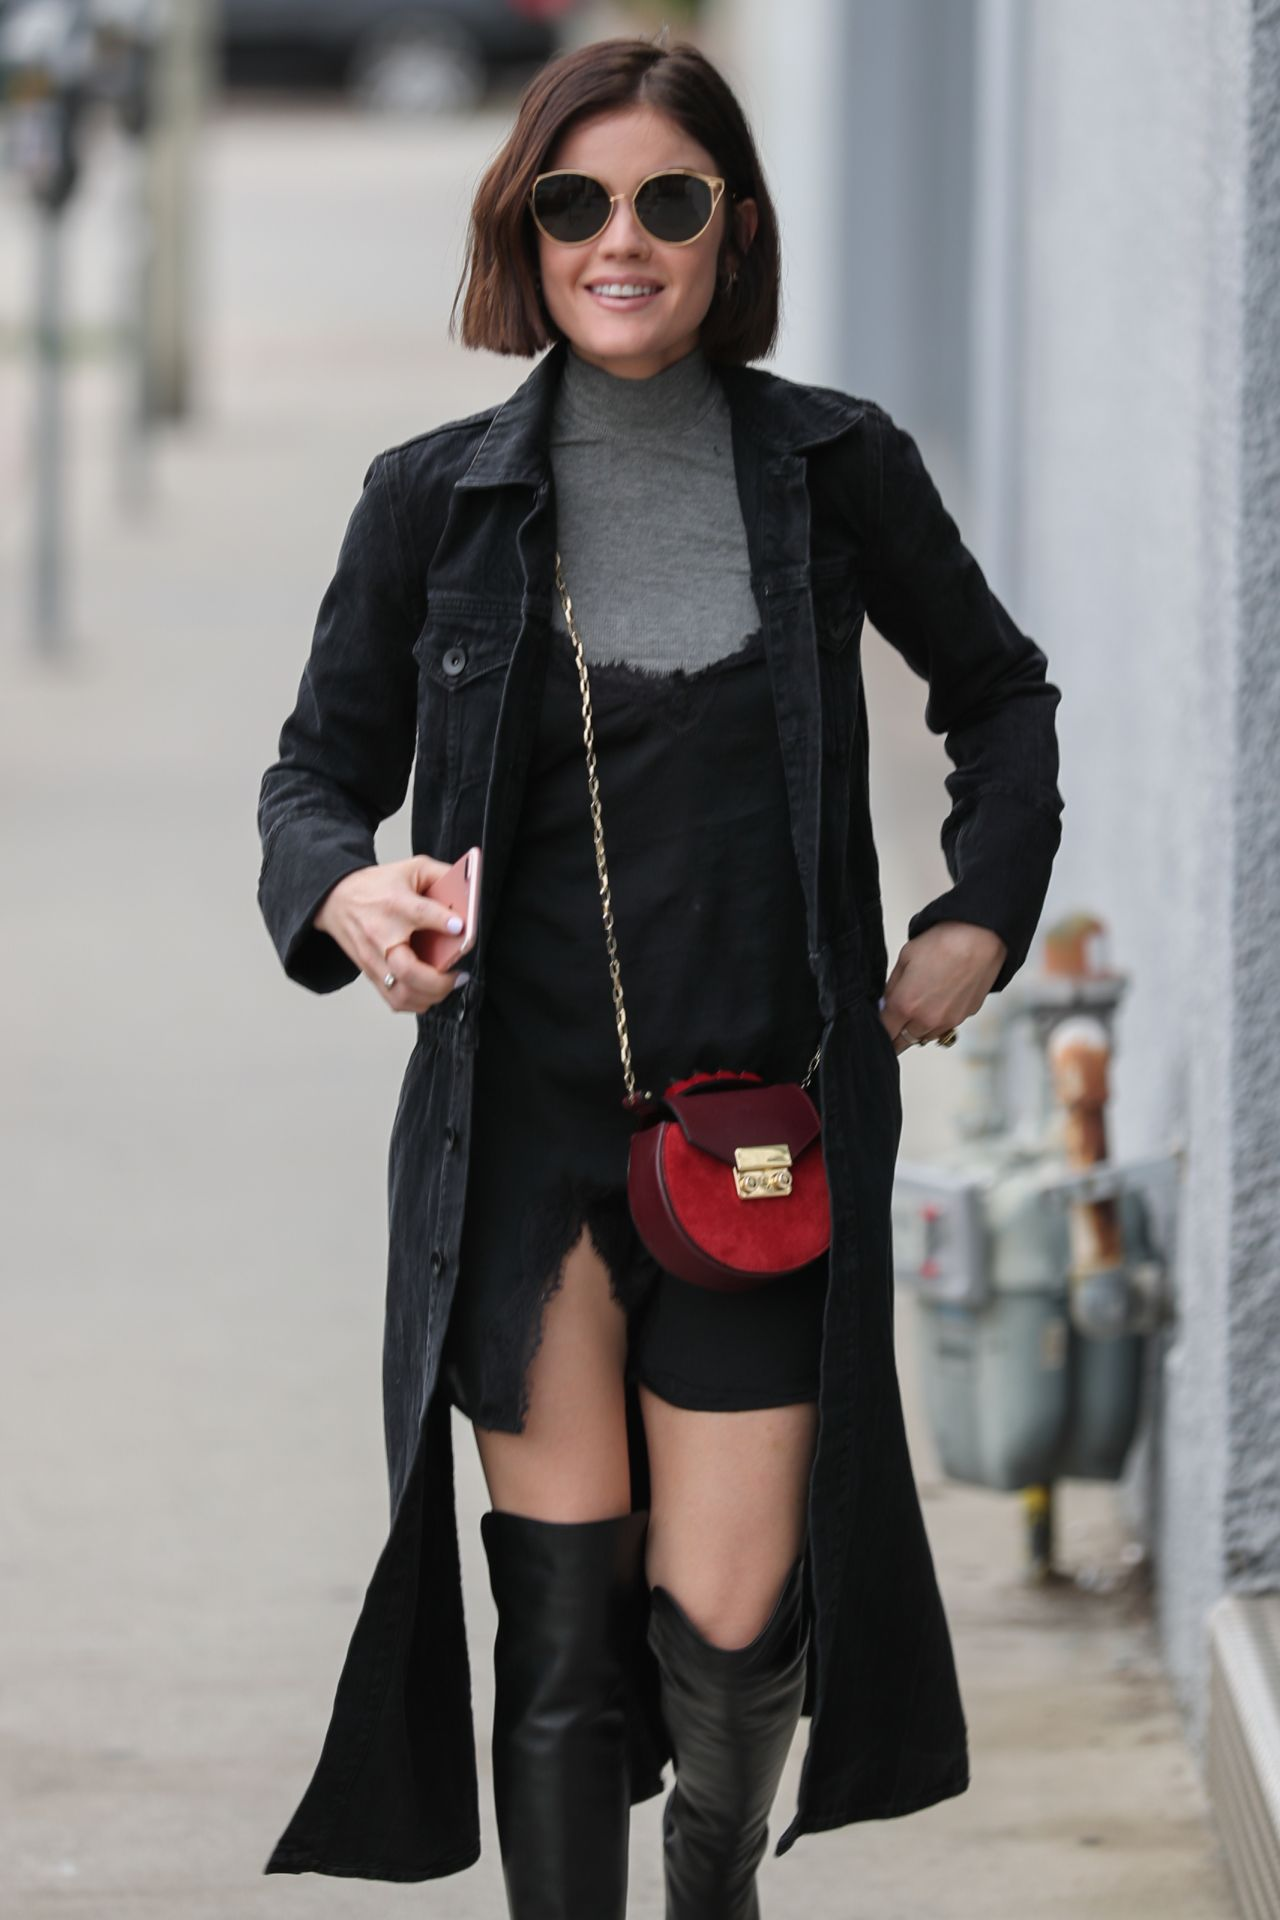 Lucy Hale Showcasing Her New Bob Haircut West Hollywood 221 2017